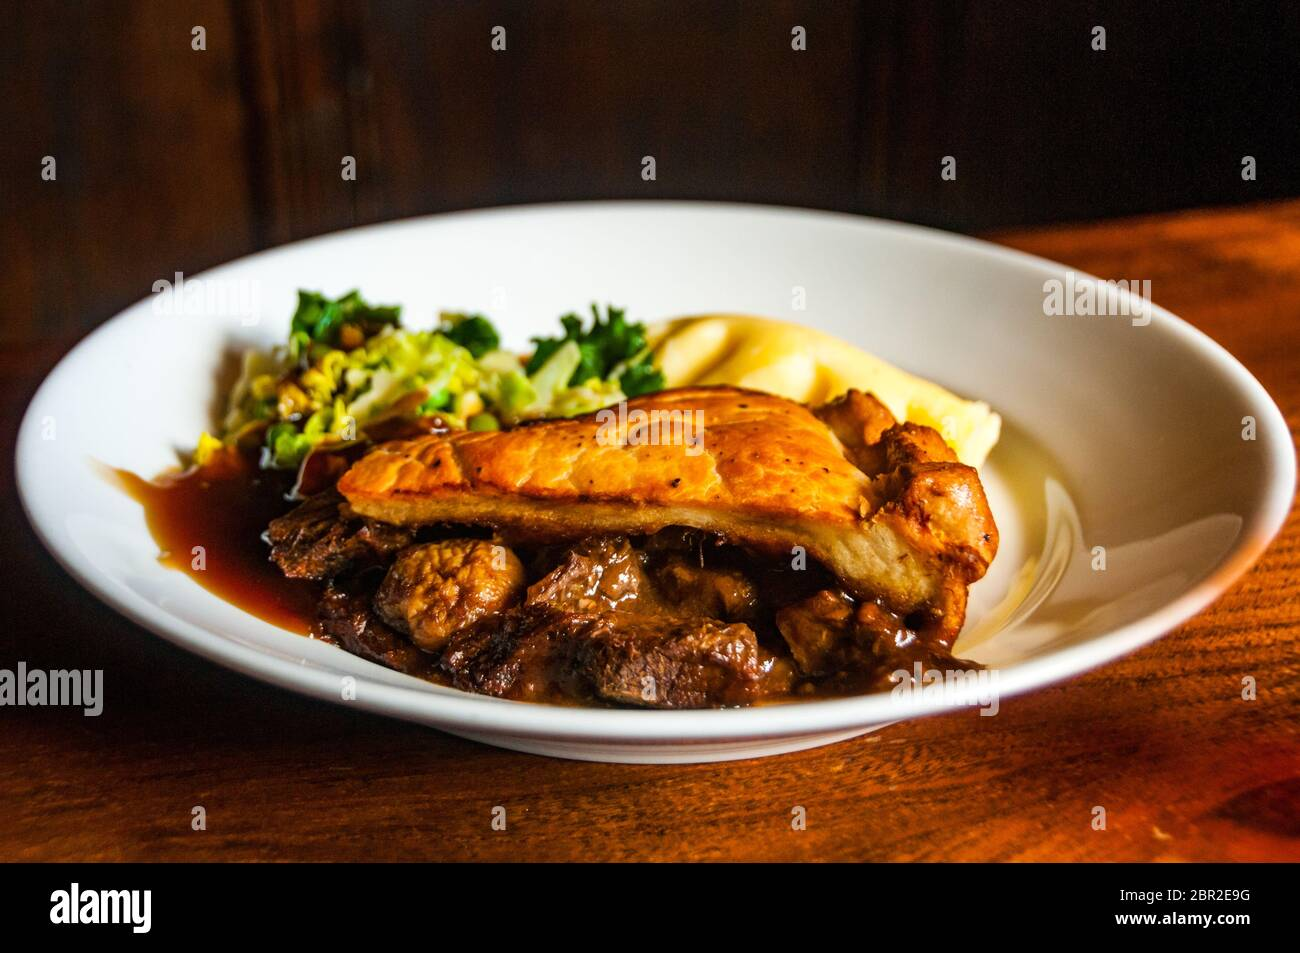 A steak and mushroom pie at the High Corner Inn at Linwood in the New Forest. Stock Photo